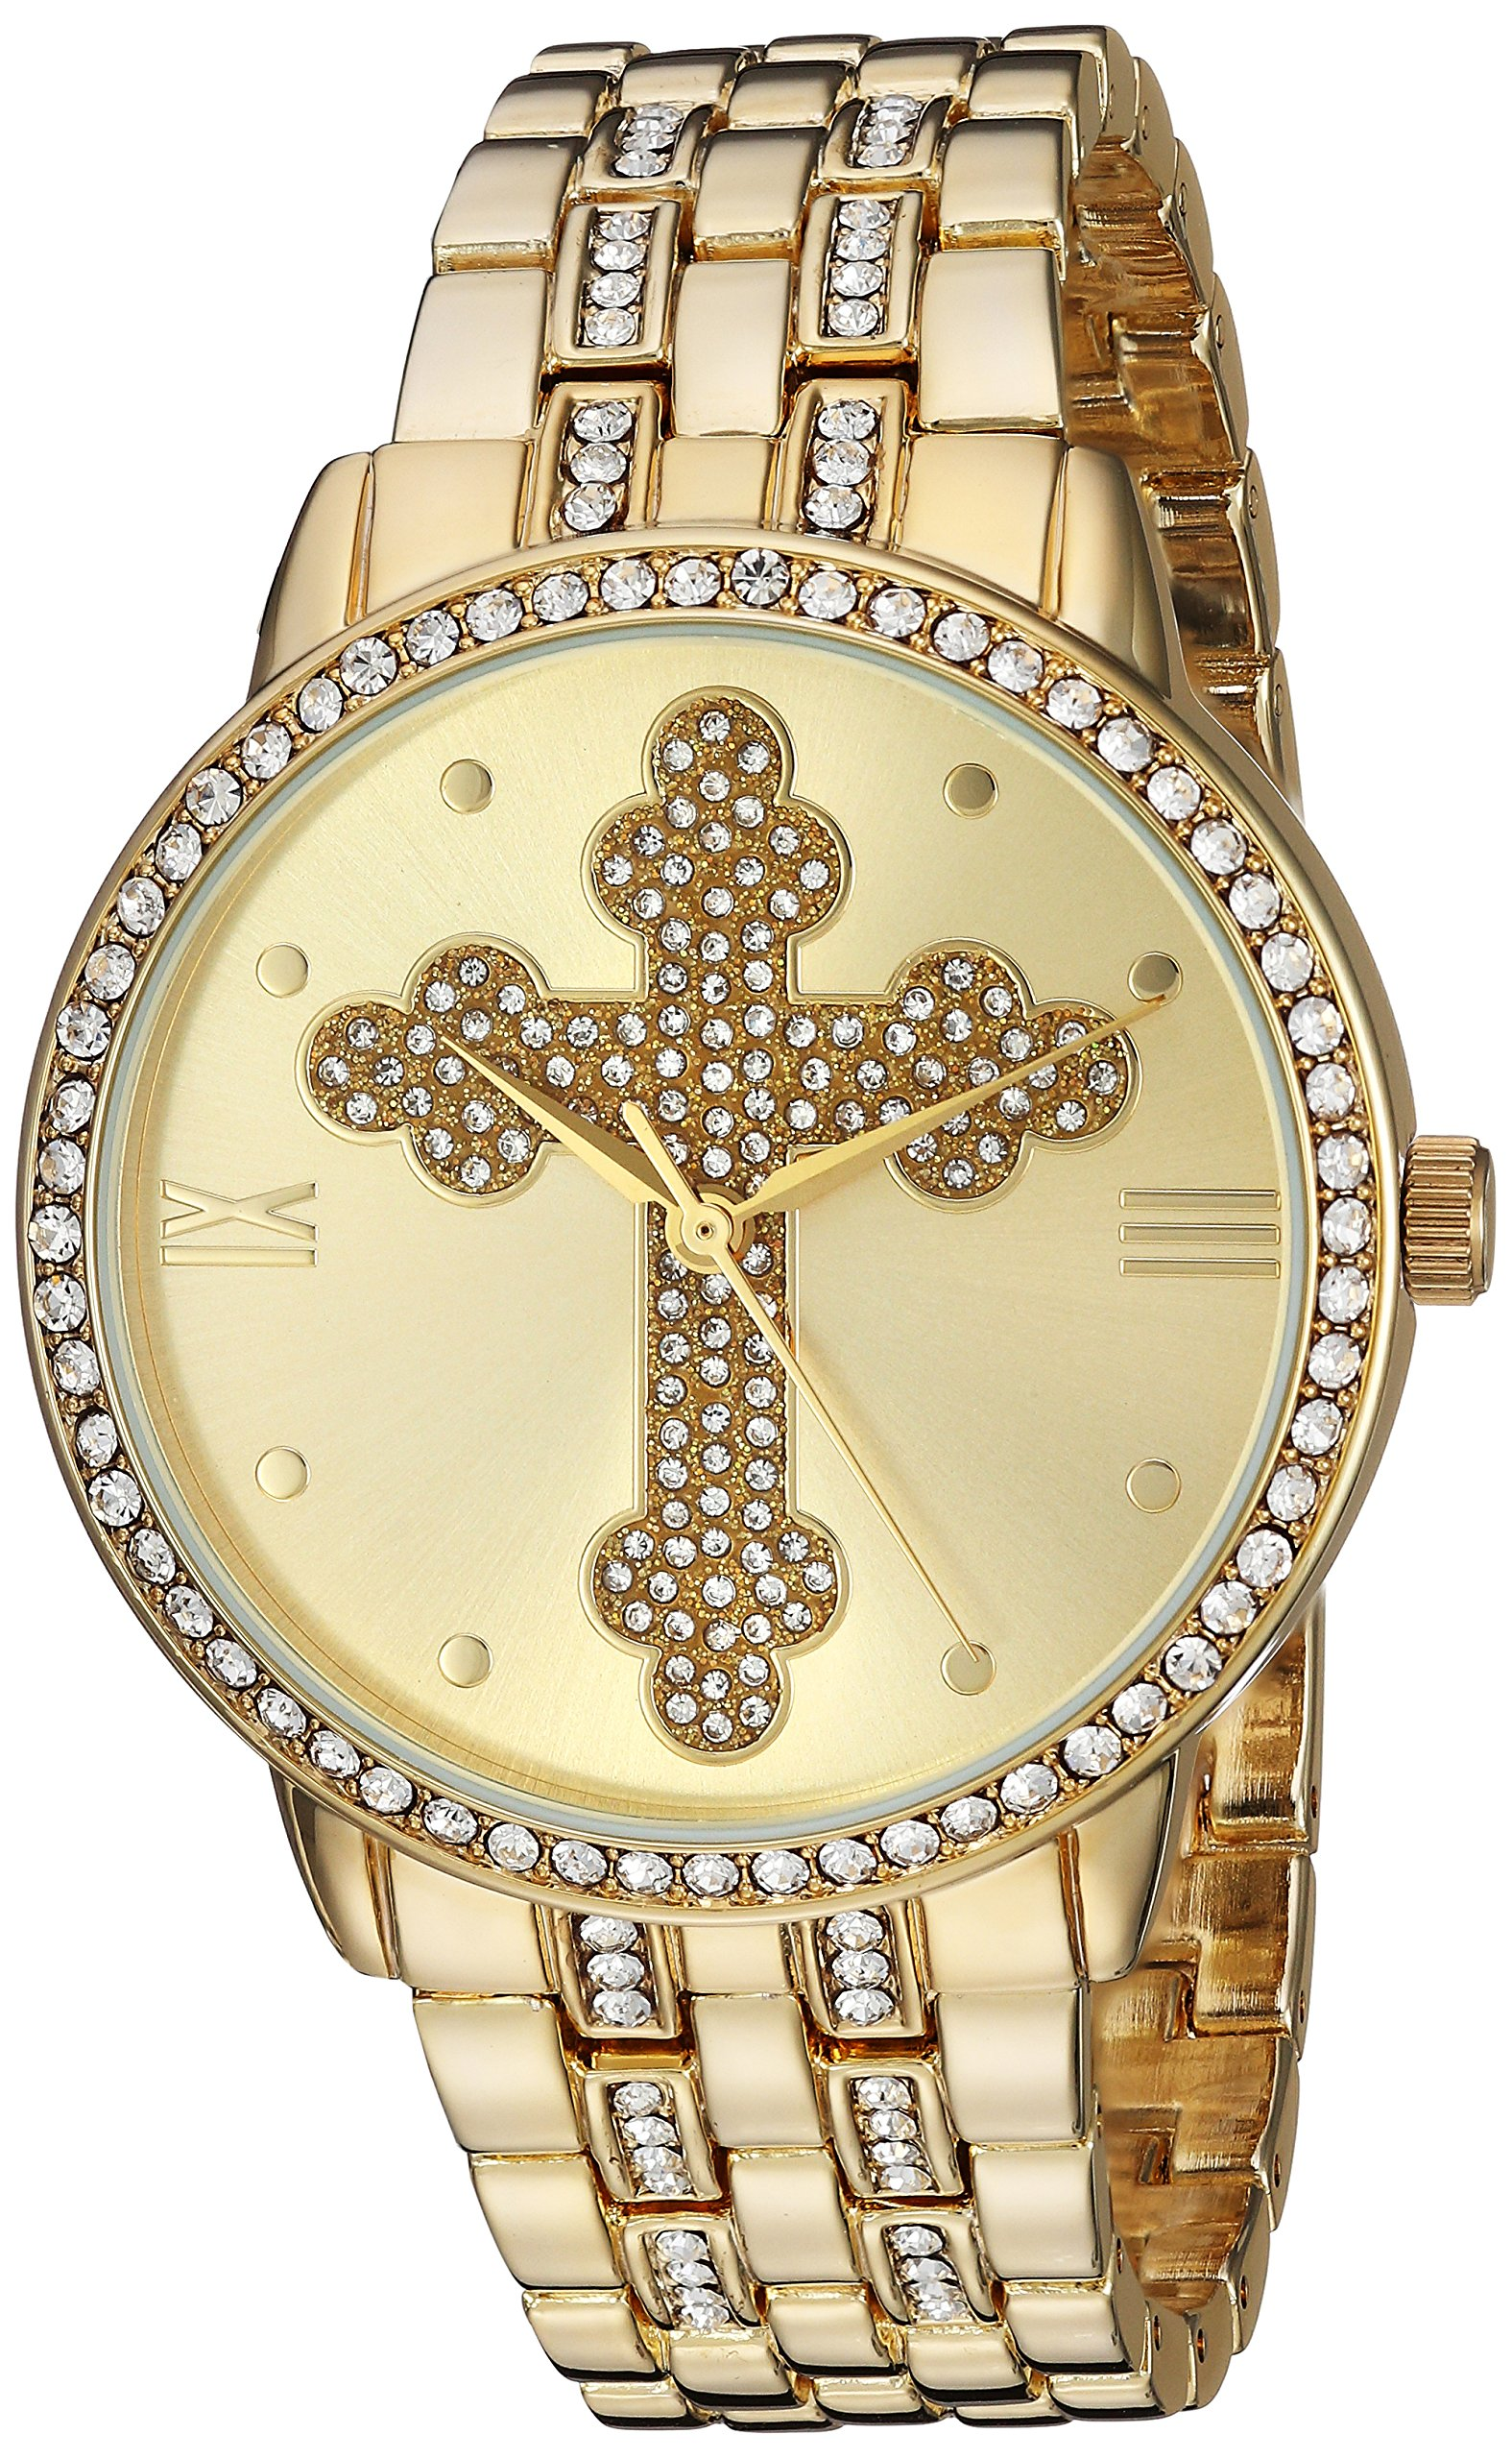 eWatchFactory EW Men's Cross Religious Analog-Quartz Watch with Stainless-Steel Strap, Gold, 10 (Model: PW00208